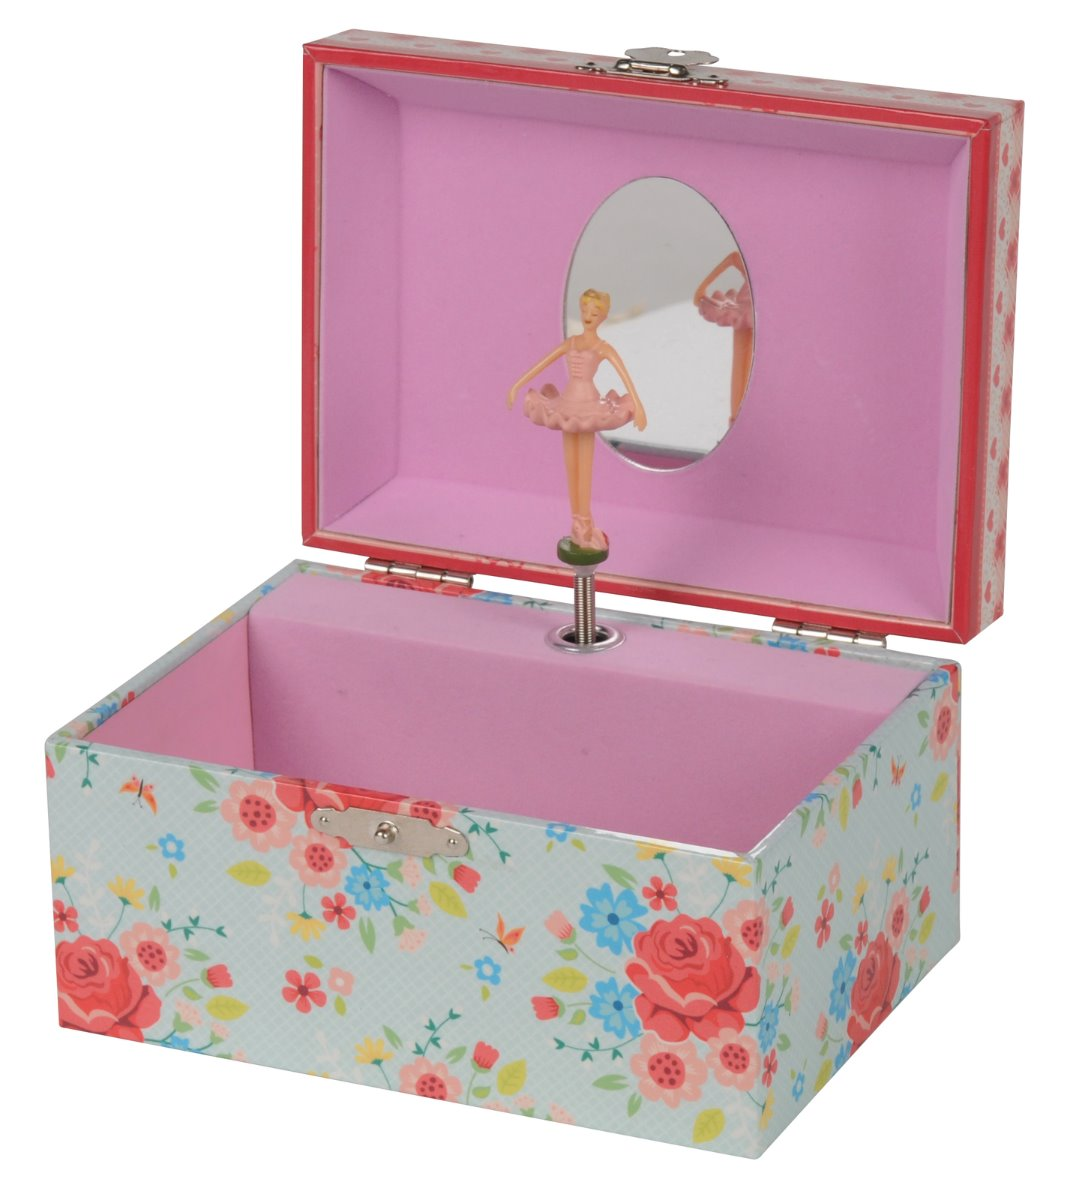 Tiger Tribe children's musical Jewellery Box Rose Garden